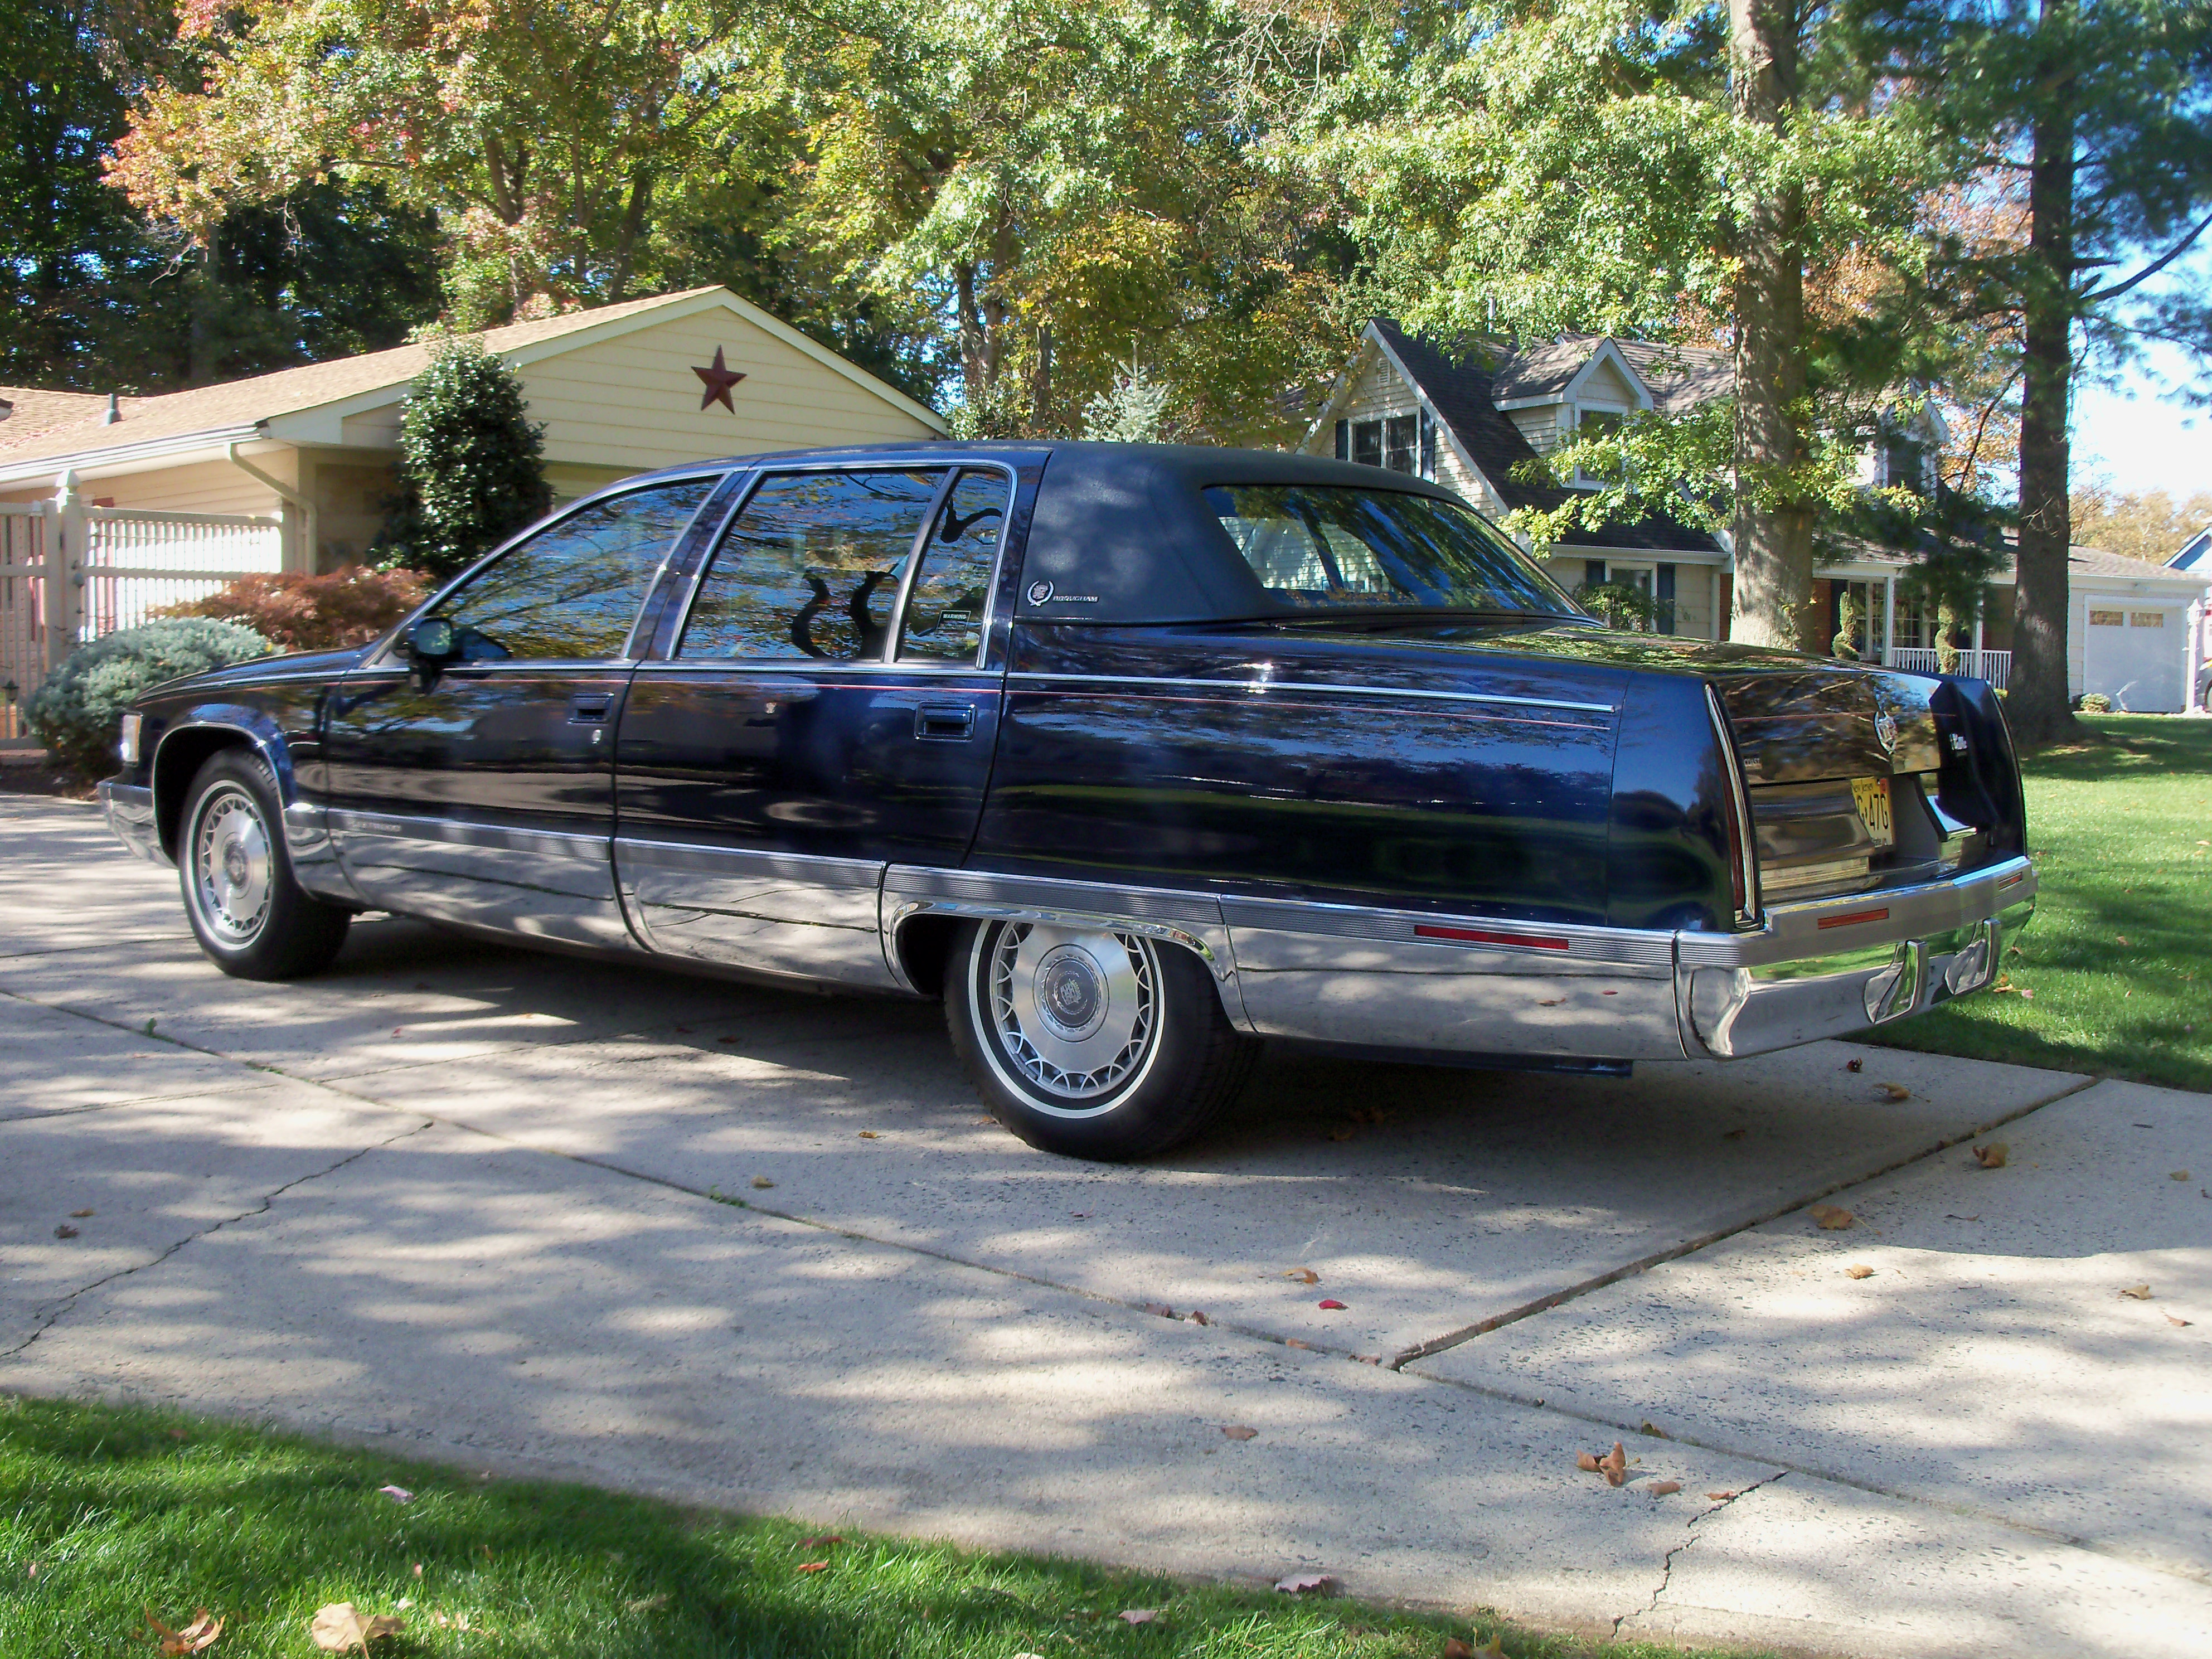 1993 cadillac fleetwood brougham. Cars Review. Best American Auto & Cars Review